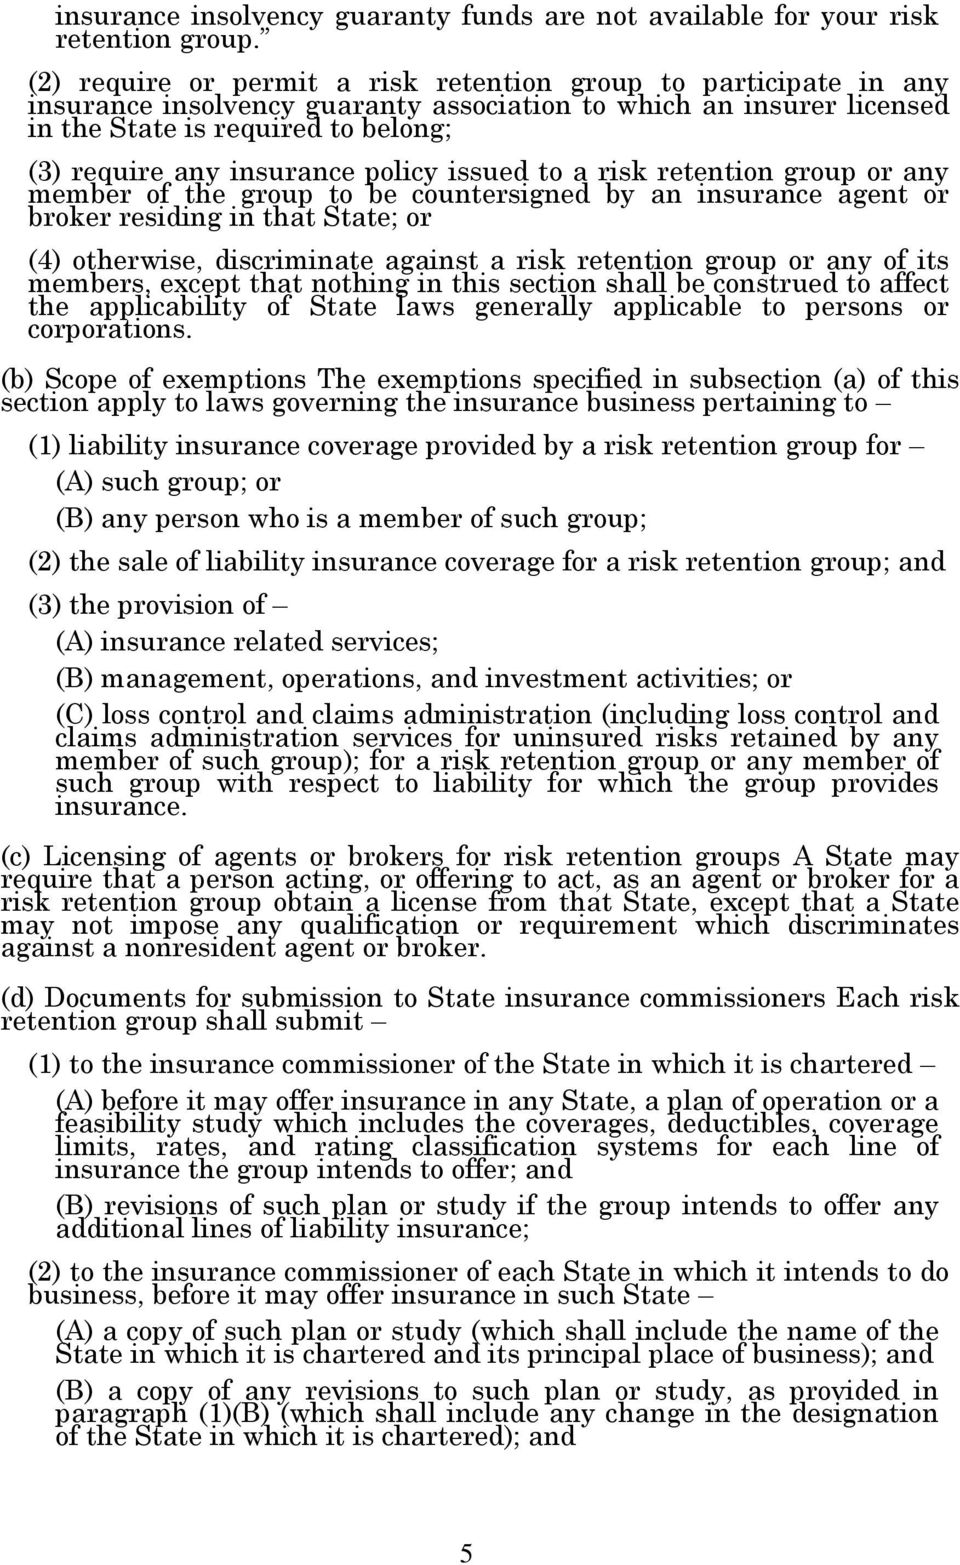 policy issued to a risk retention group or any member of the group to be countersigned by an insurance agent or broker residing in that State; or (4) otherwise, discriminate against a risk retention